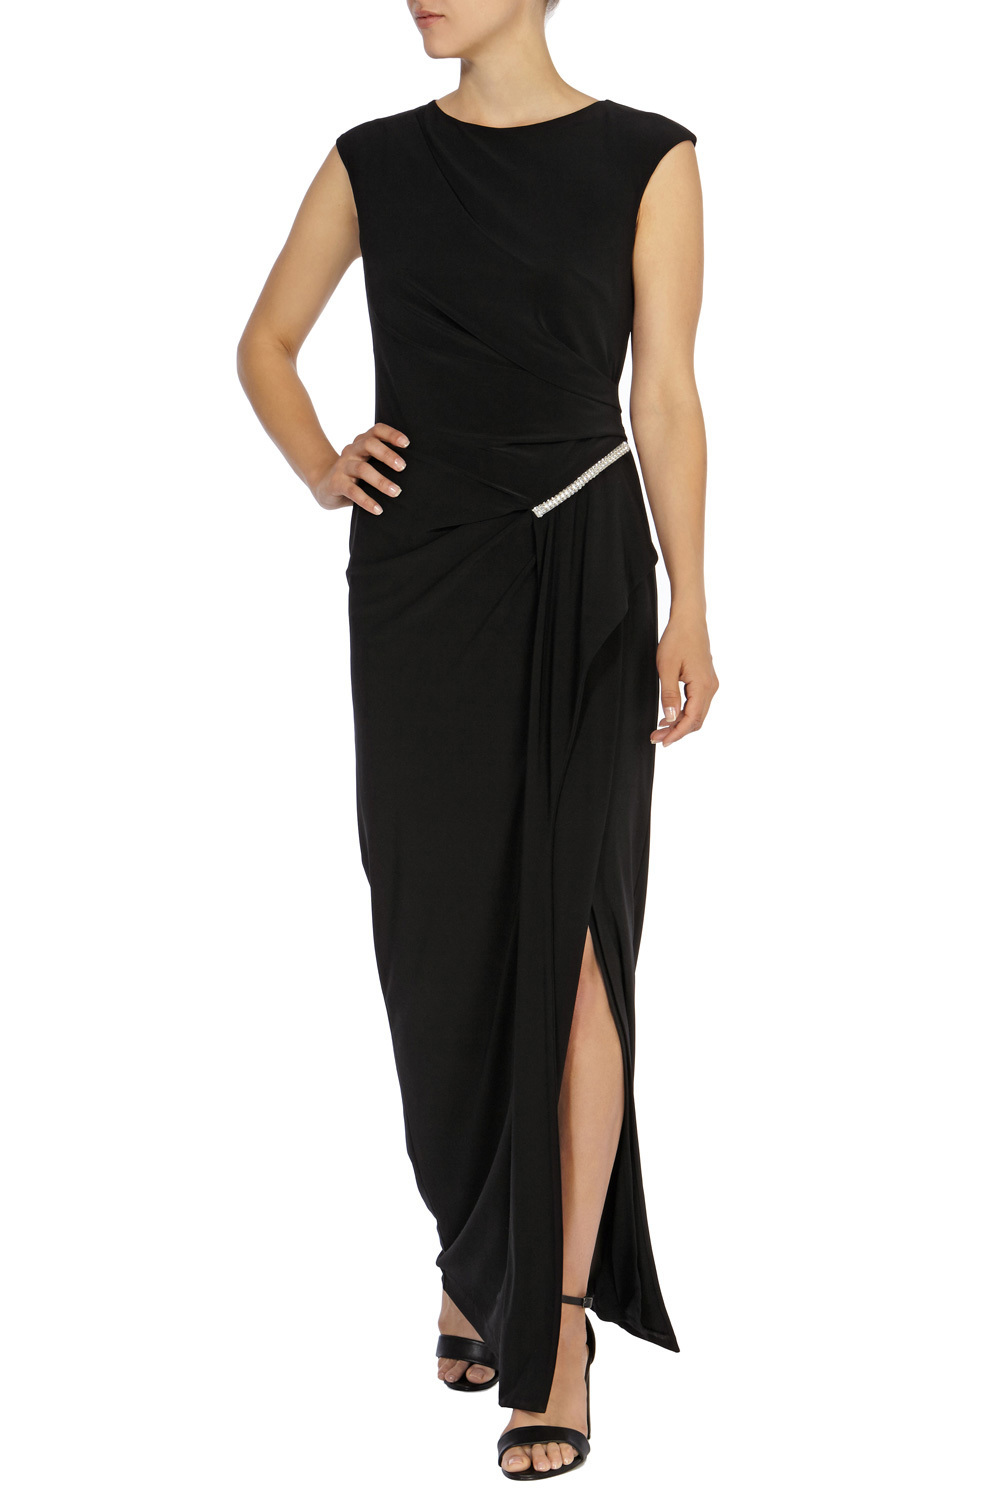 Graciella Jersey Maxi Dress Sl - sleeve style: capped; pattern: plain; style: maxi dress; length: ankle length; hip detail: draws attention to hips; predominant colour: black; occasions: evening; fit: body skimming; fibres: polyester/polyamide - stretch; neckline: crew; sleeve length: sleeveless; texture group: jersey - clingy; pattern type: fabric; embellishment: zips; season: a/w 2015; wardrobe: event